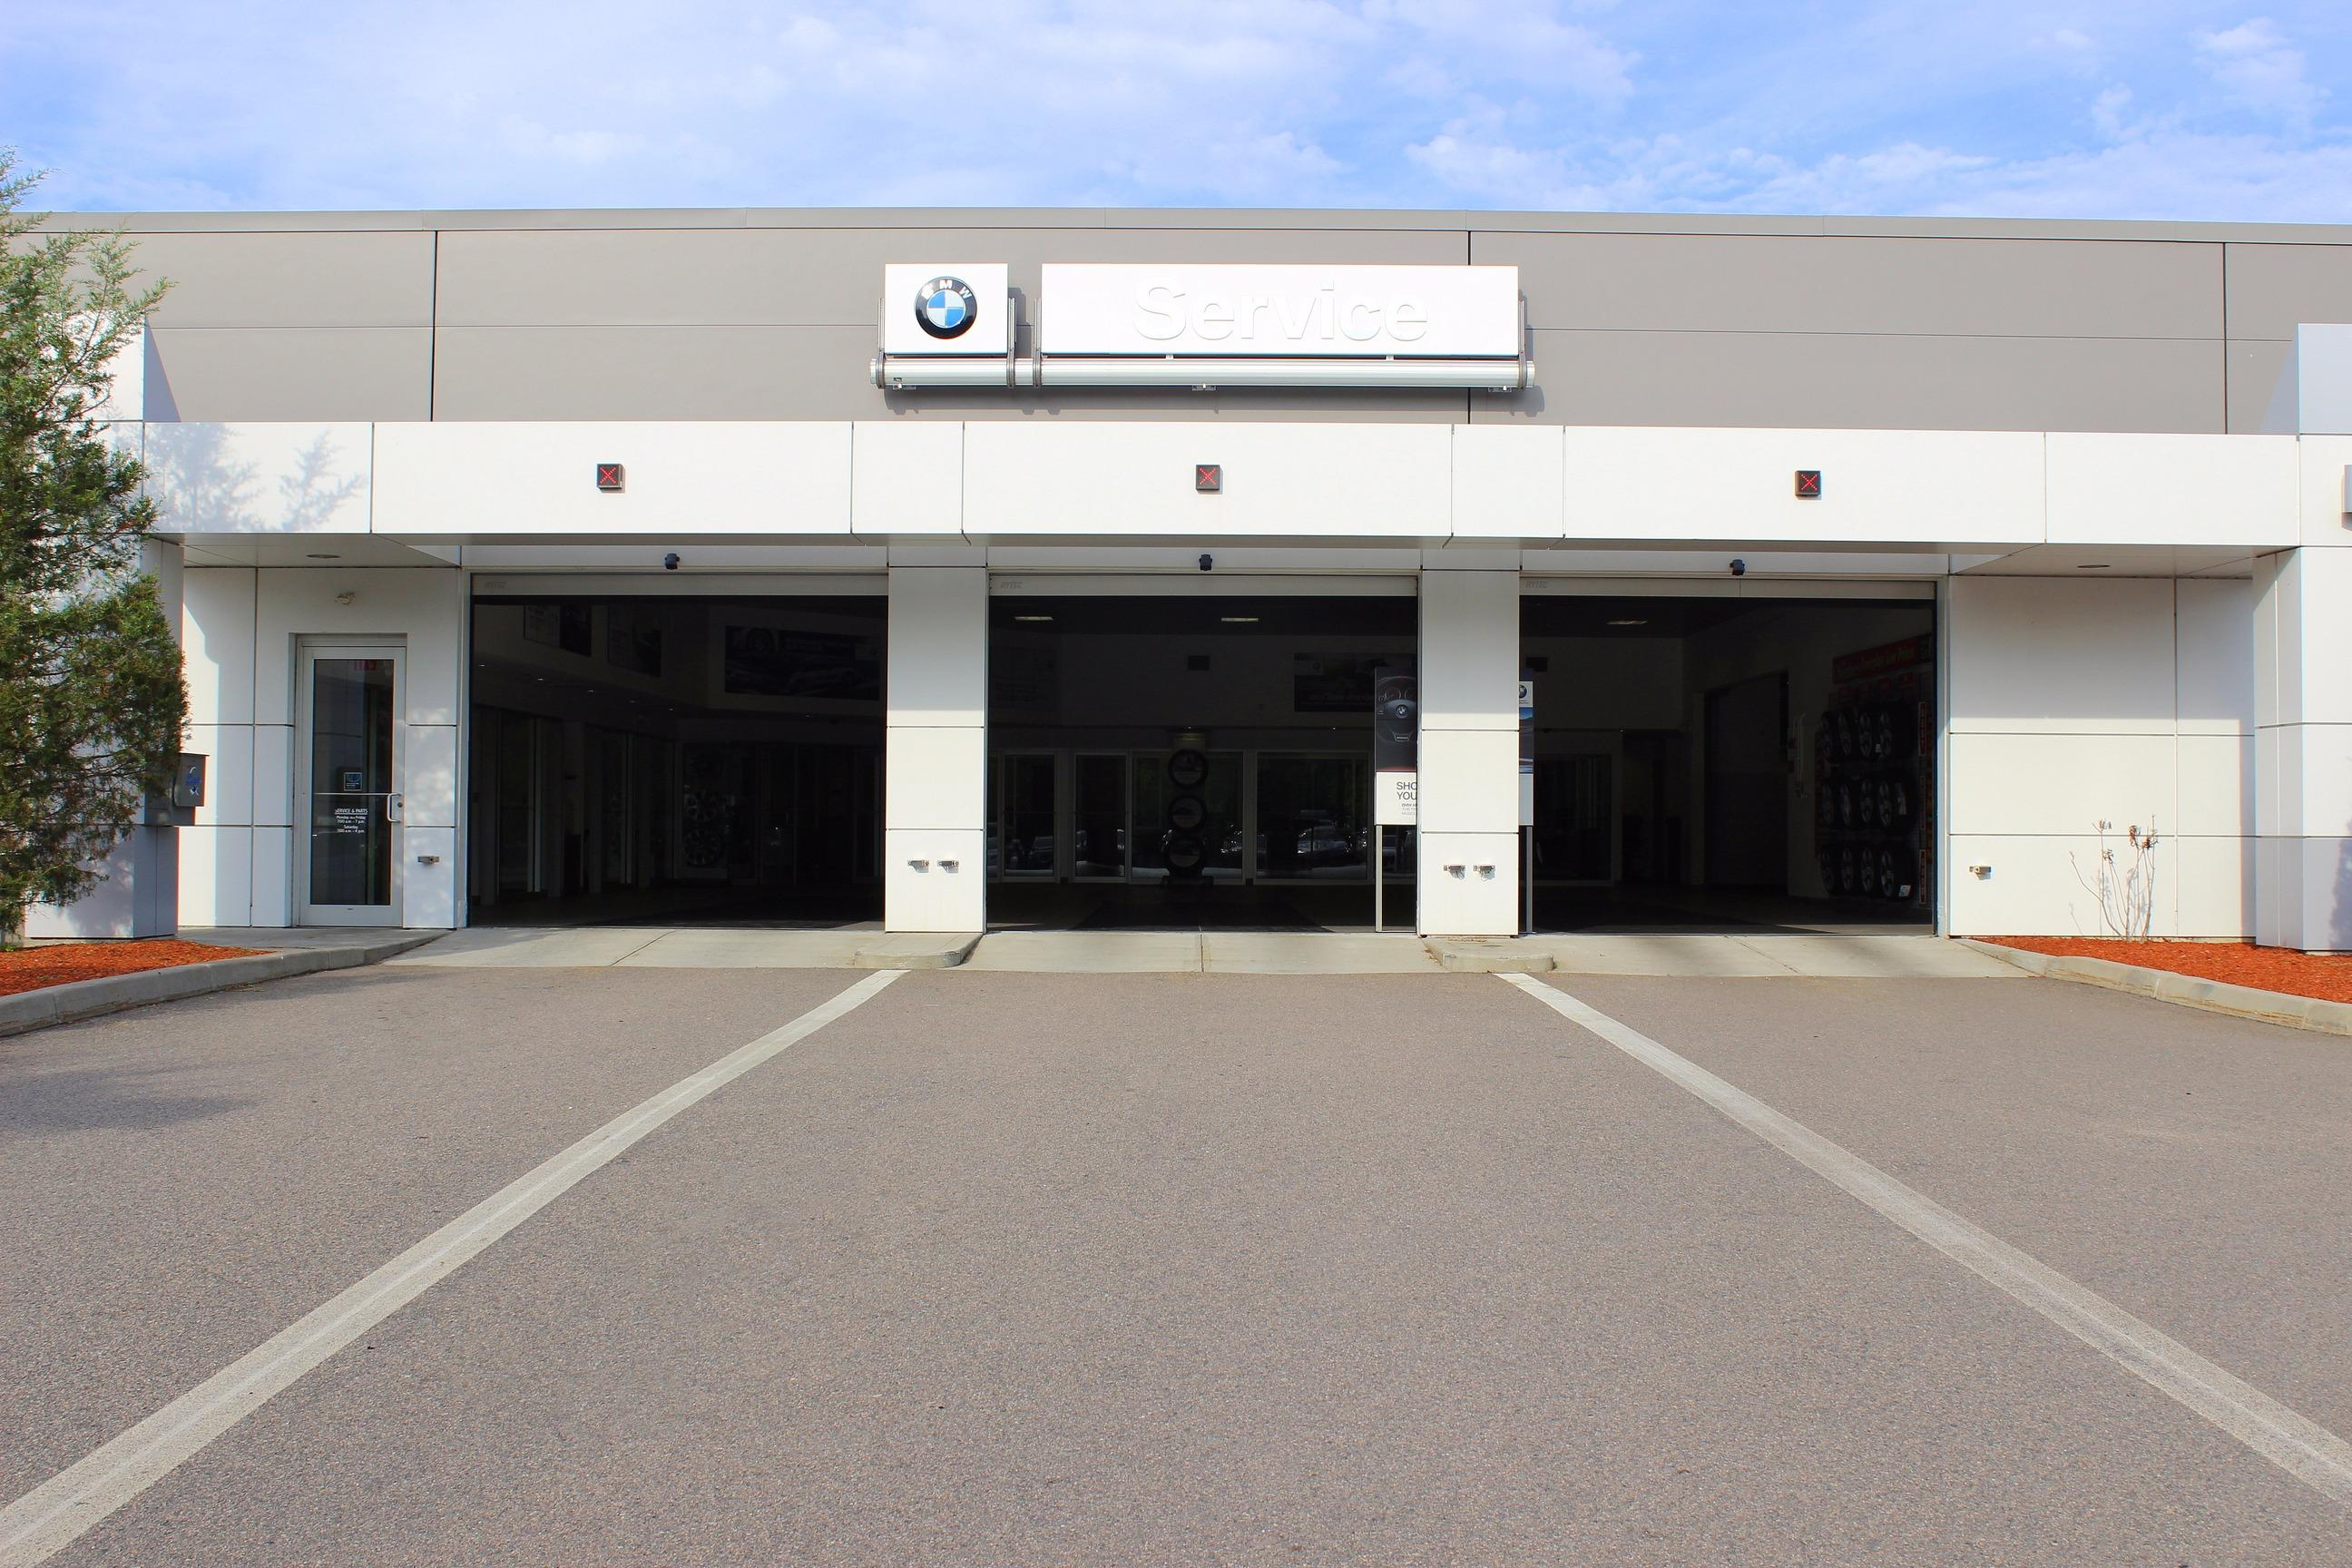 herb chambers bmw of sudbury at 128 boston post rd, sudbury, ma on fave